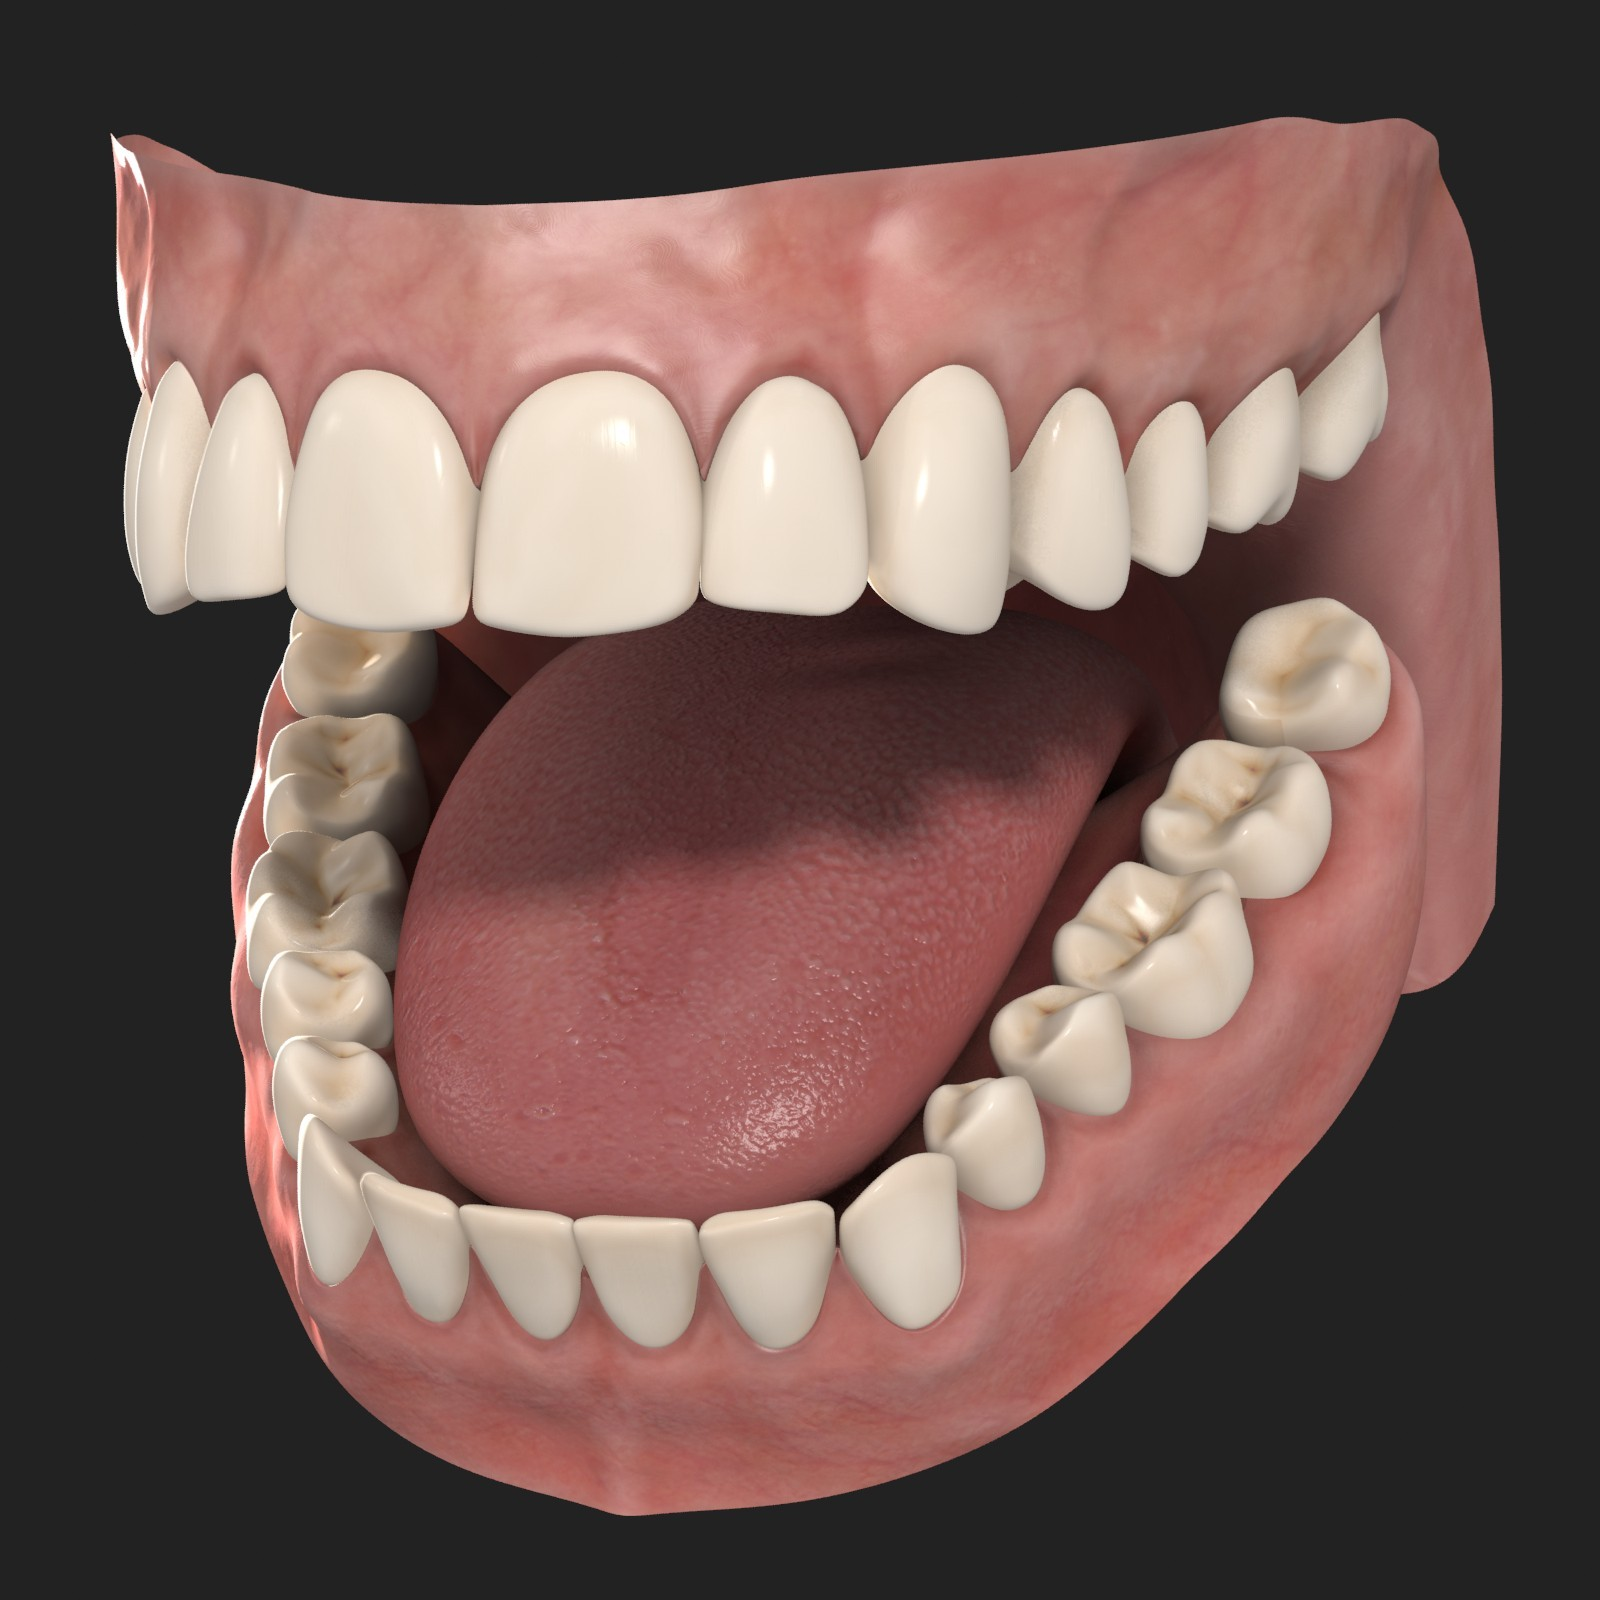 Free Photo  Human Teeth - Adult  Model  Tongue